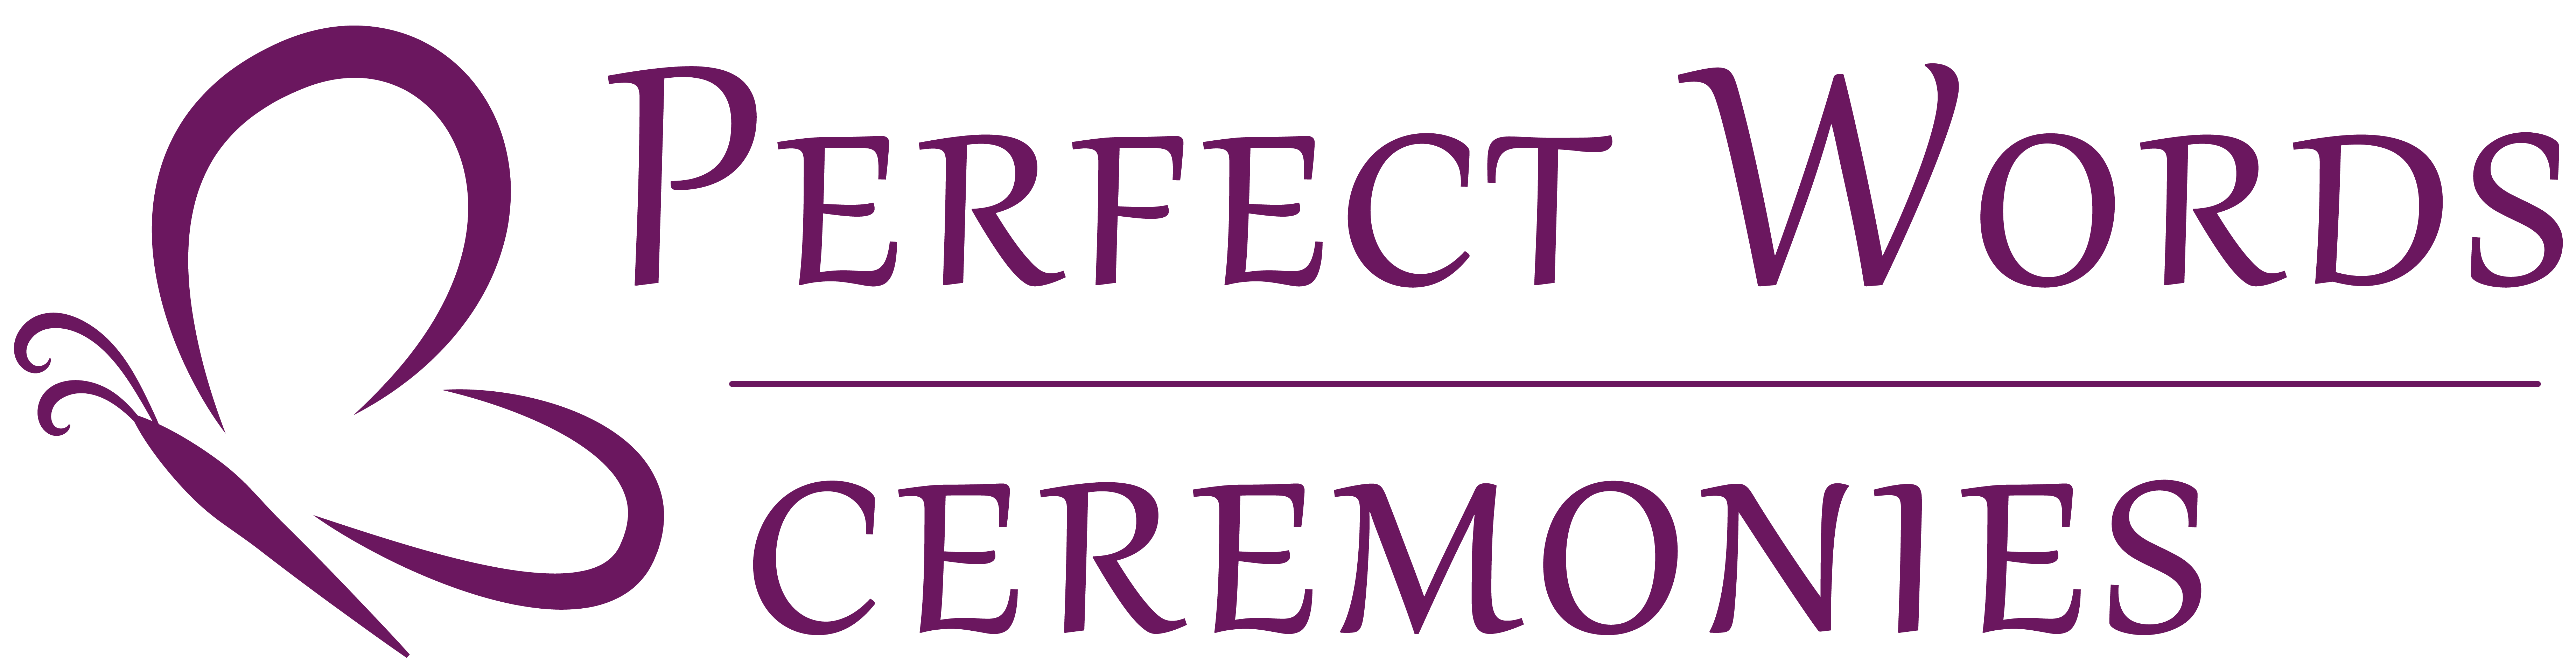 Perfect Words Ceremonies